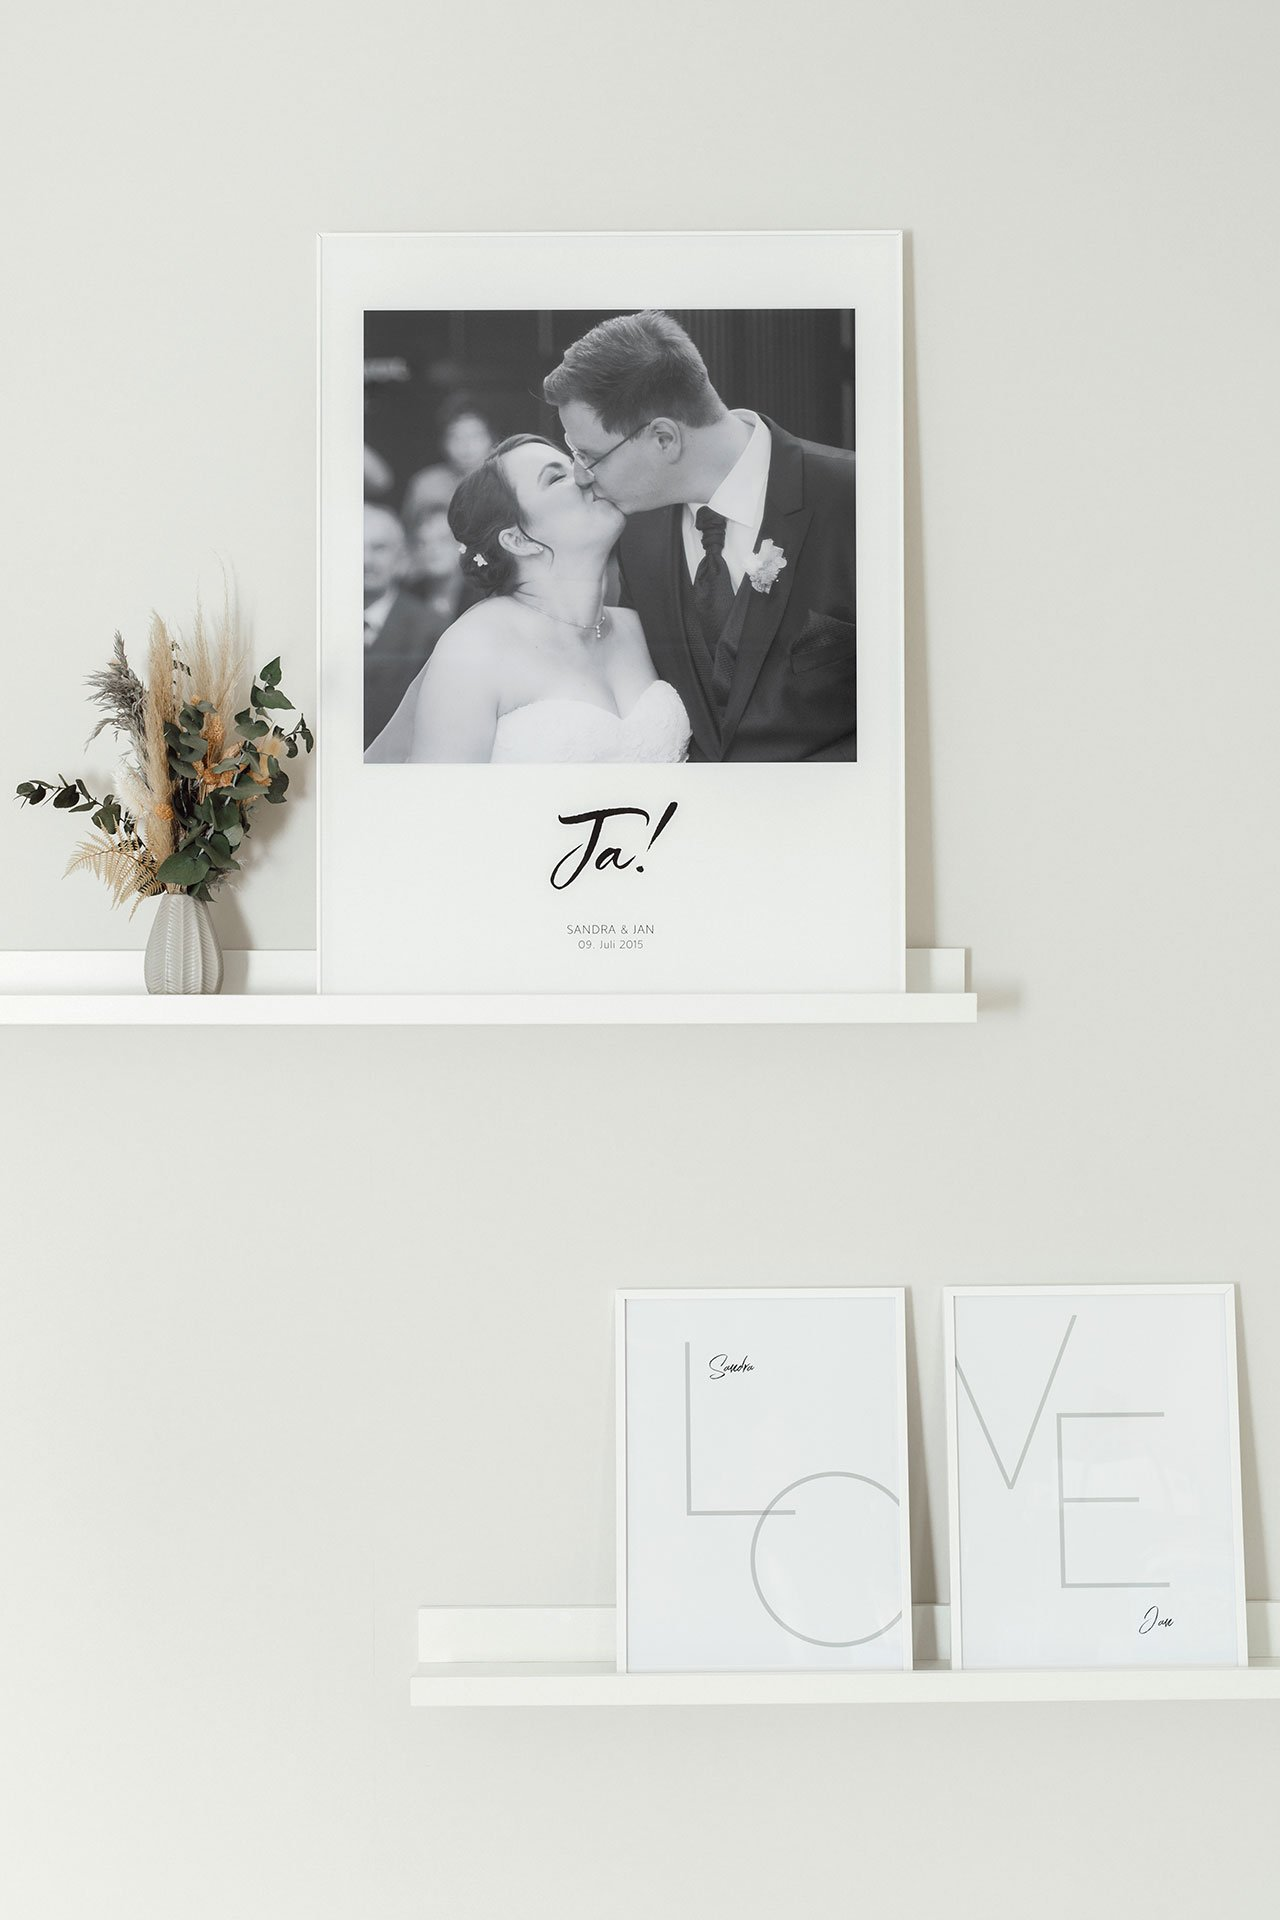 1632479275 377 Your most beautiful wedding moments as a mural - Your most beautiful wedding moments as a mural